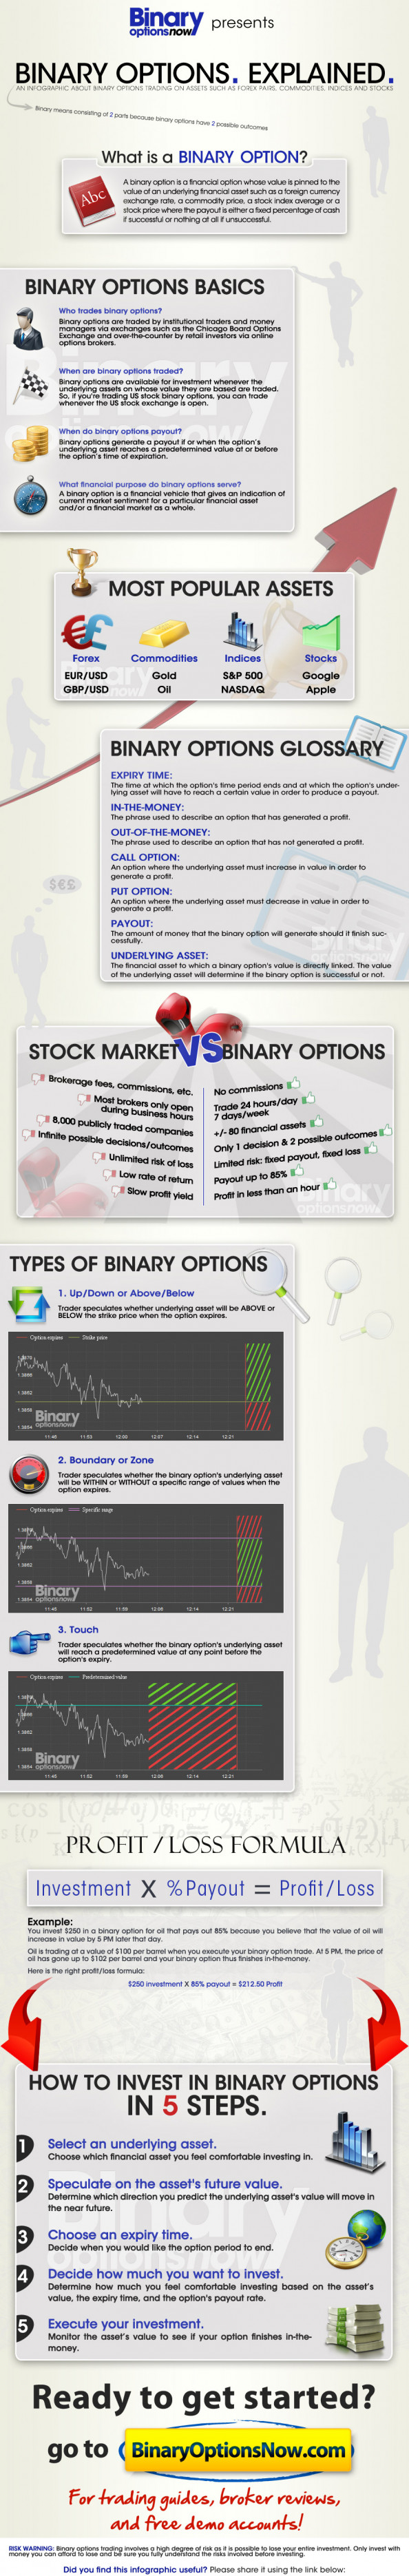 Binary Options Explained: What are Binary Options Infographic